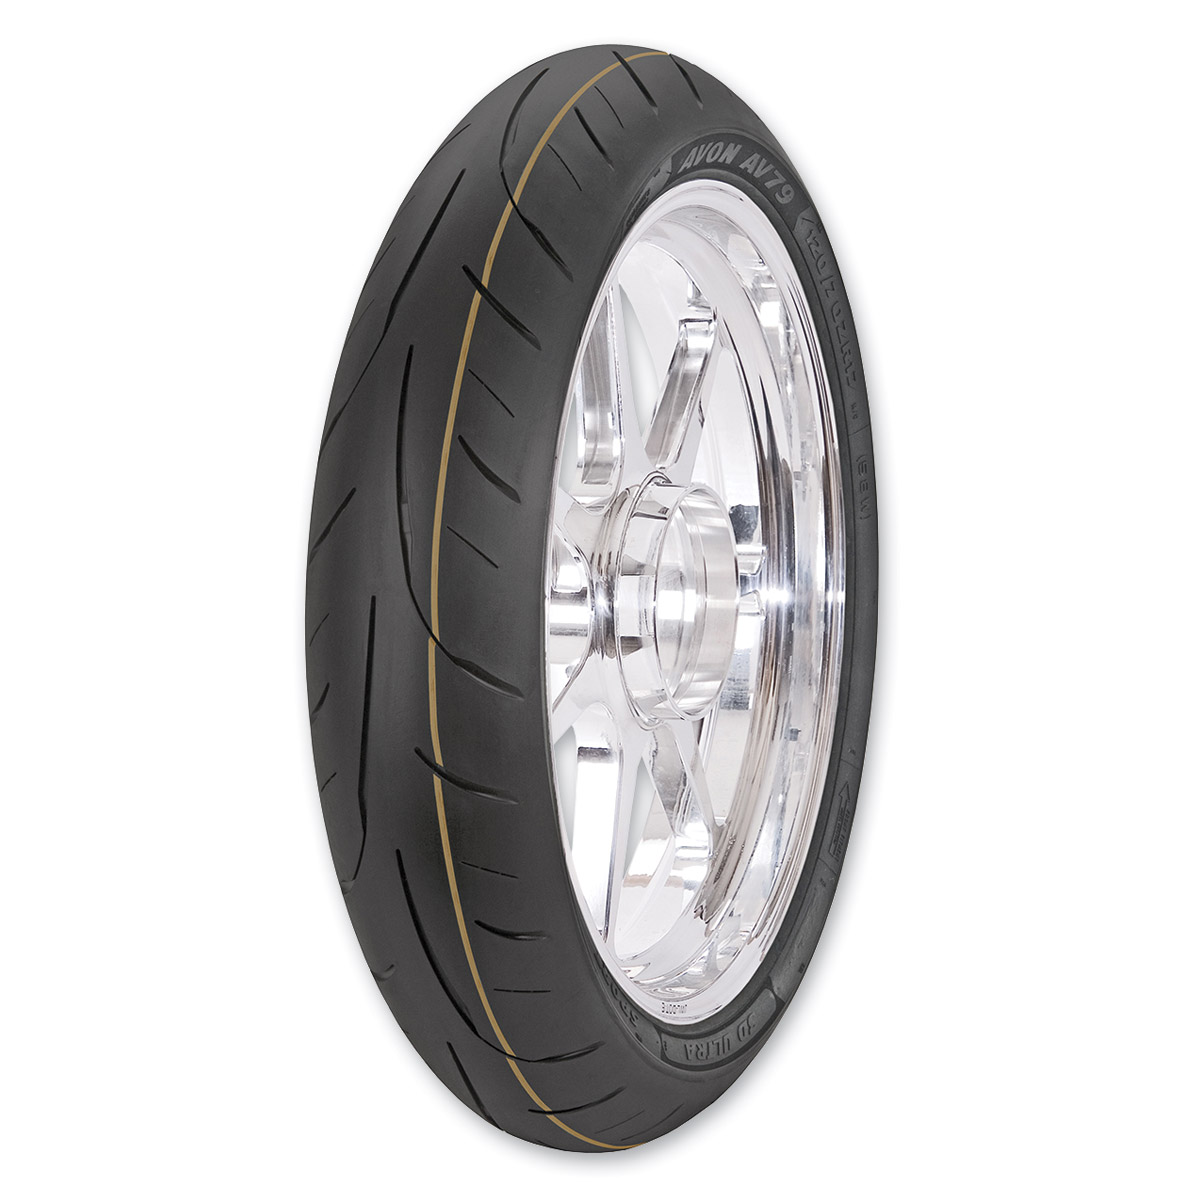 Avon AV79 3D Ultra SuperSport 120/60ZR17 Front Tire